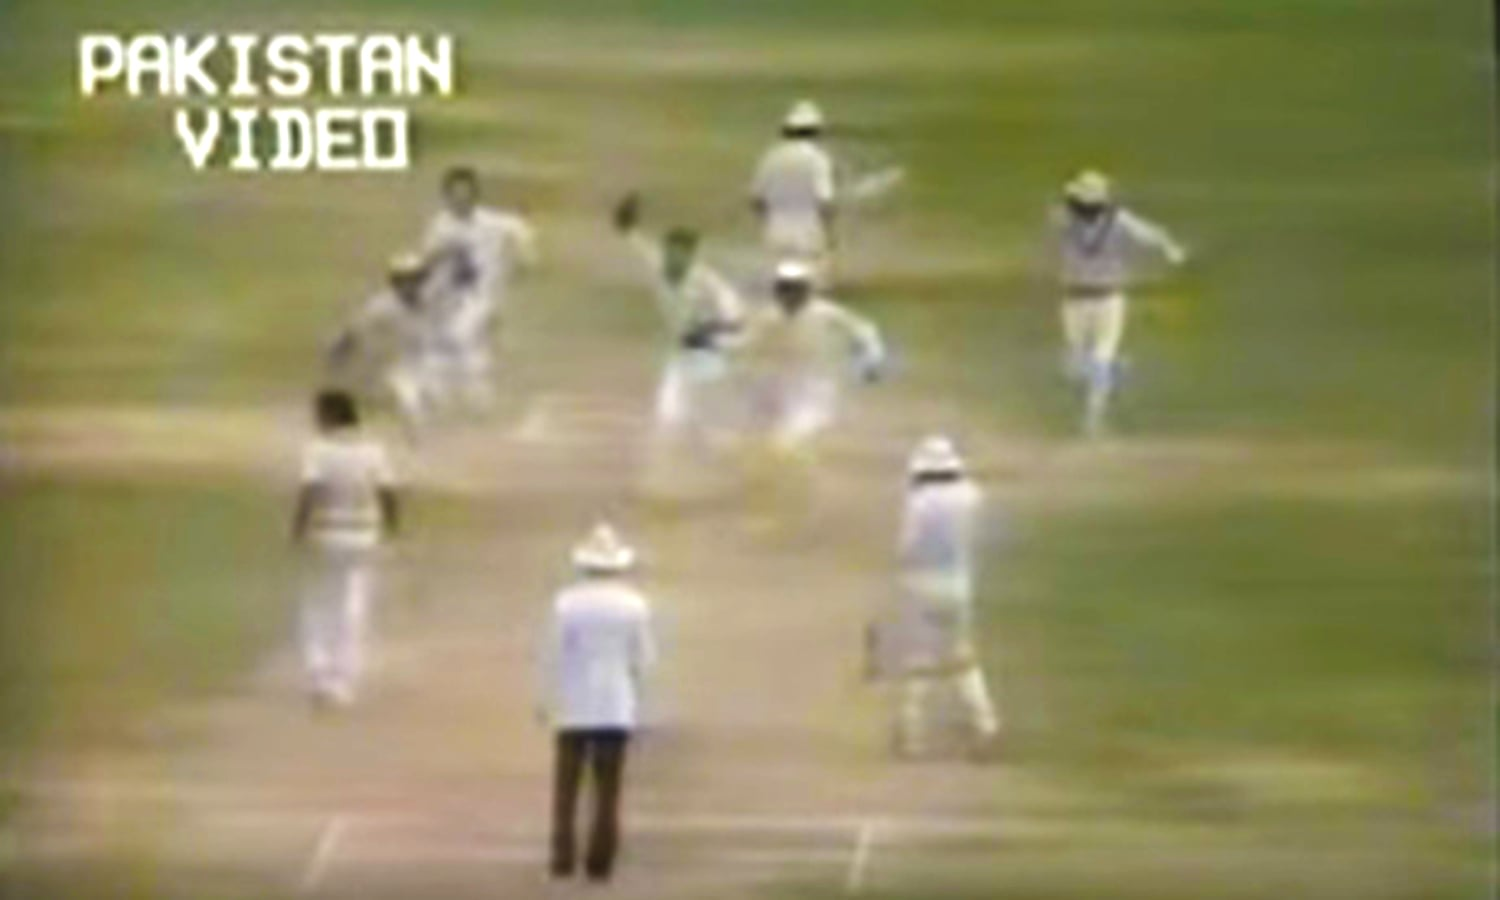 Tauseef slips through the defenses of the in-form Vengsarkar.